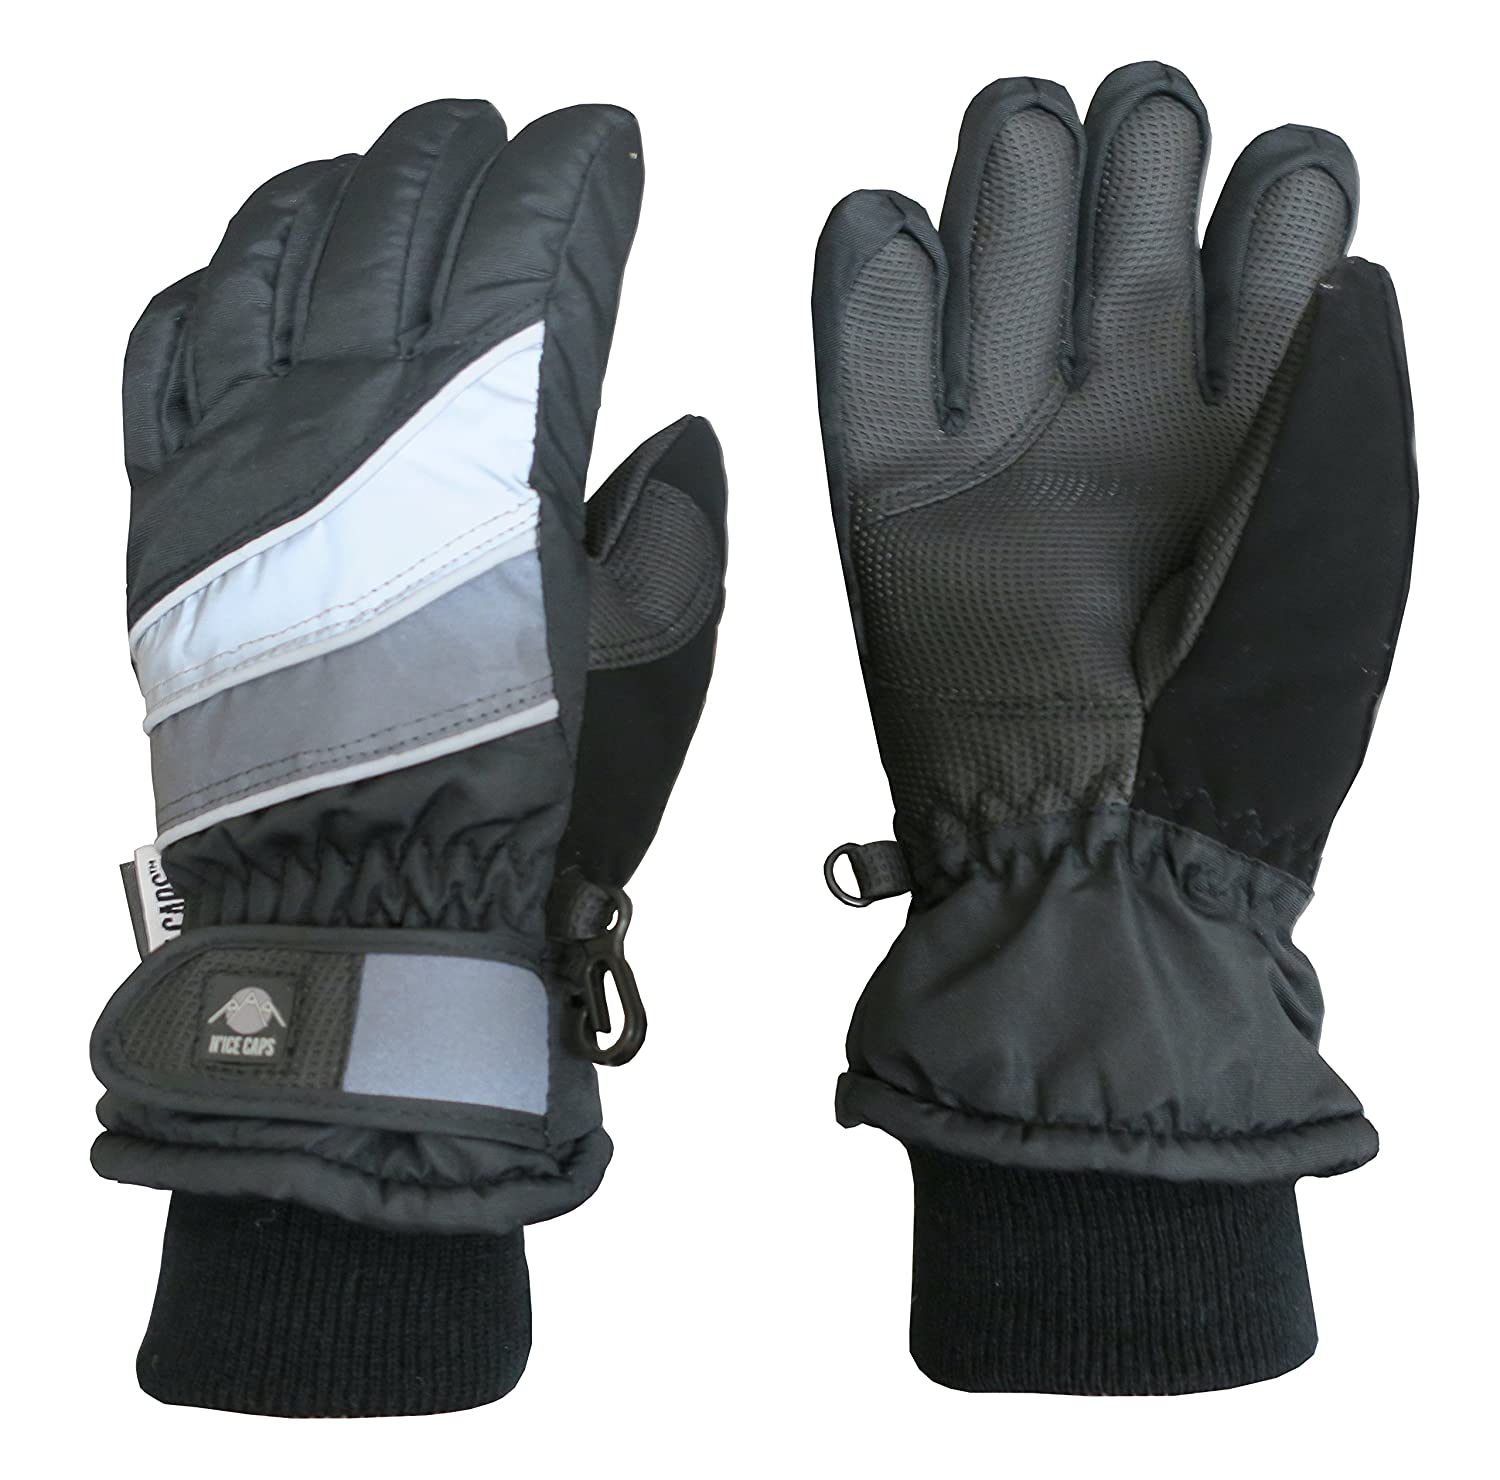 N'Ice Caps Kids Bulky Thinsulate Waterproof Winter Snow Ski Glove With Ridges 5121